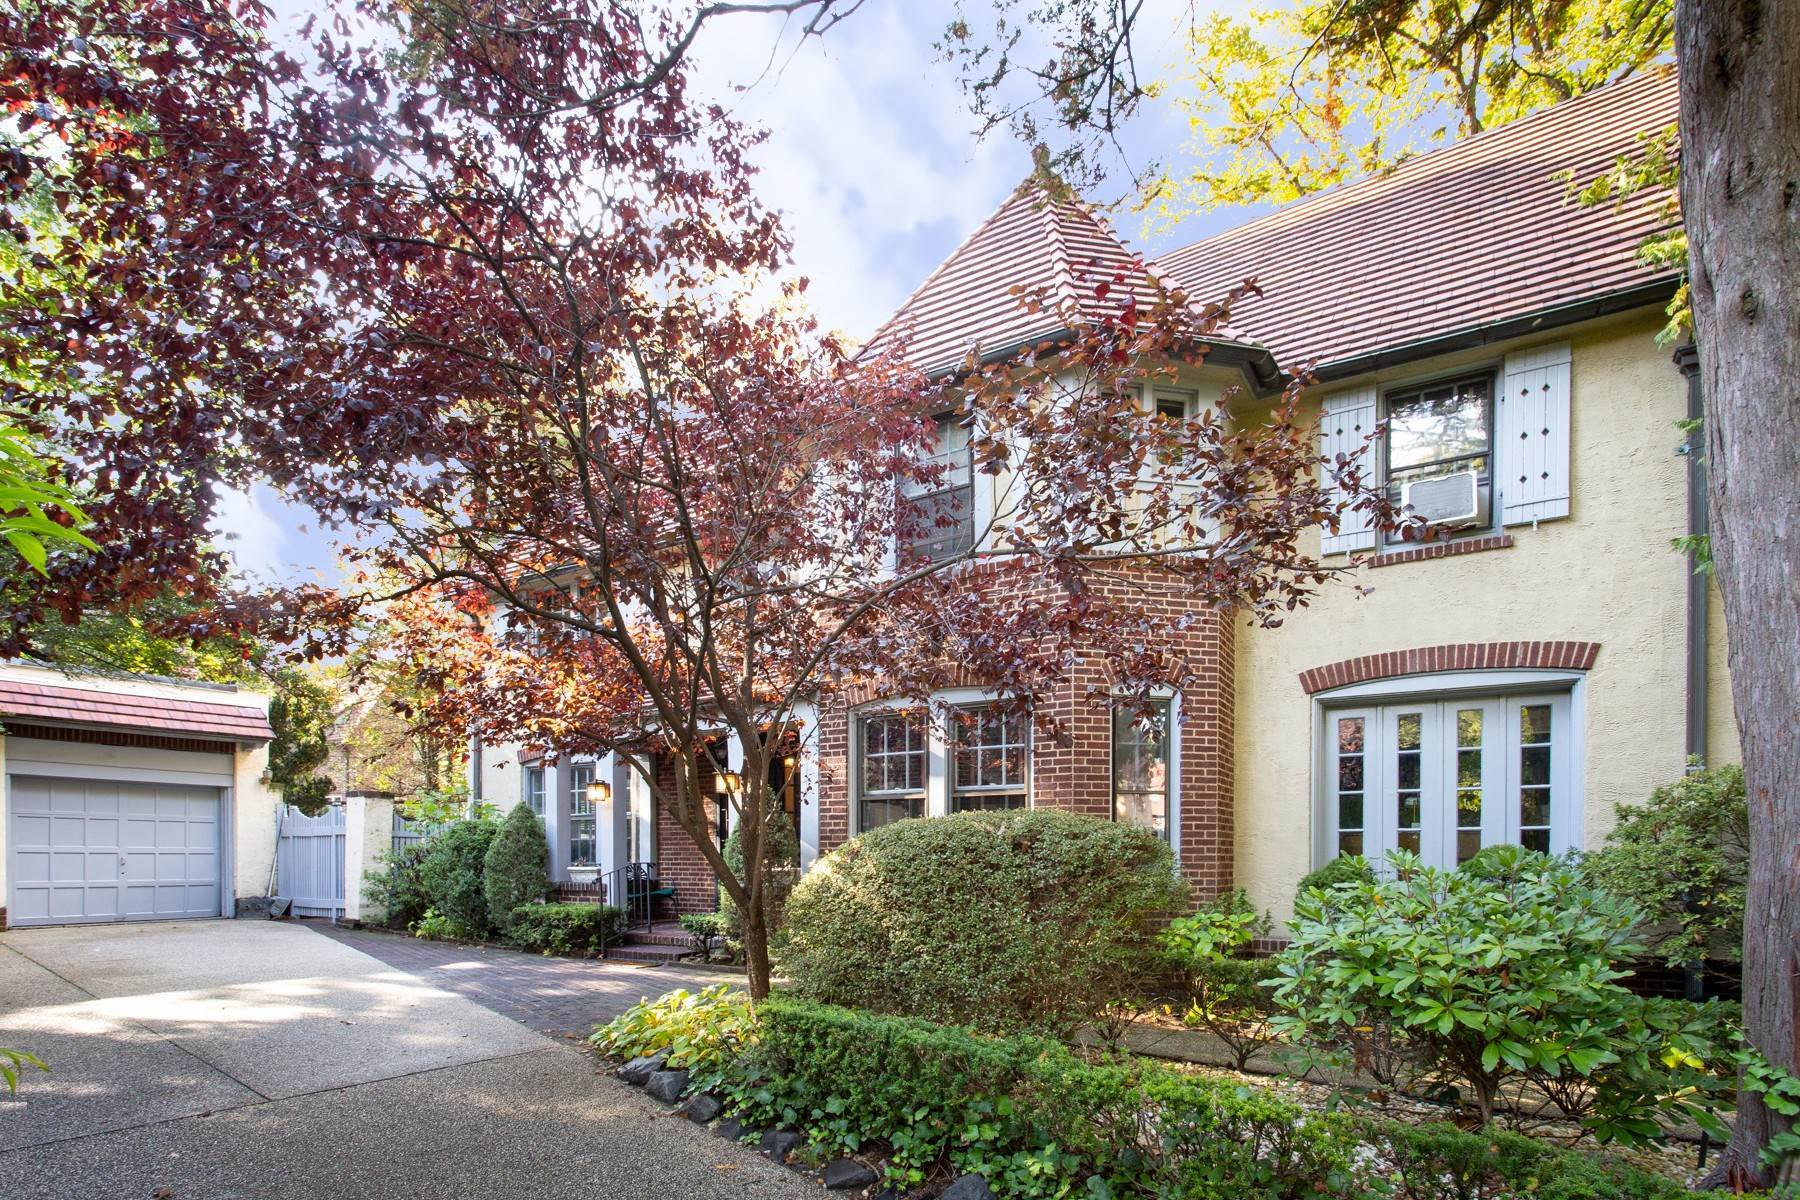 Single Family Homes por un Venta en 'FOREST HILLS GARDENS ATTERBURY HOME DESIGNED FOR LIVING, SPACIOUS INSIDE & OUT' 63 Greenway North, Forest Hills Gardens, Forest Hills, Nueva York 11375 Estados Unidos